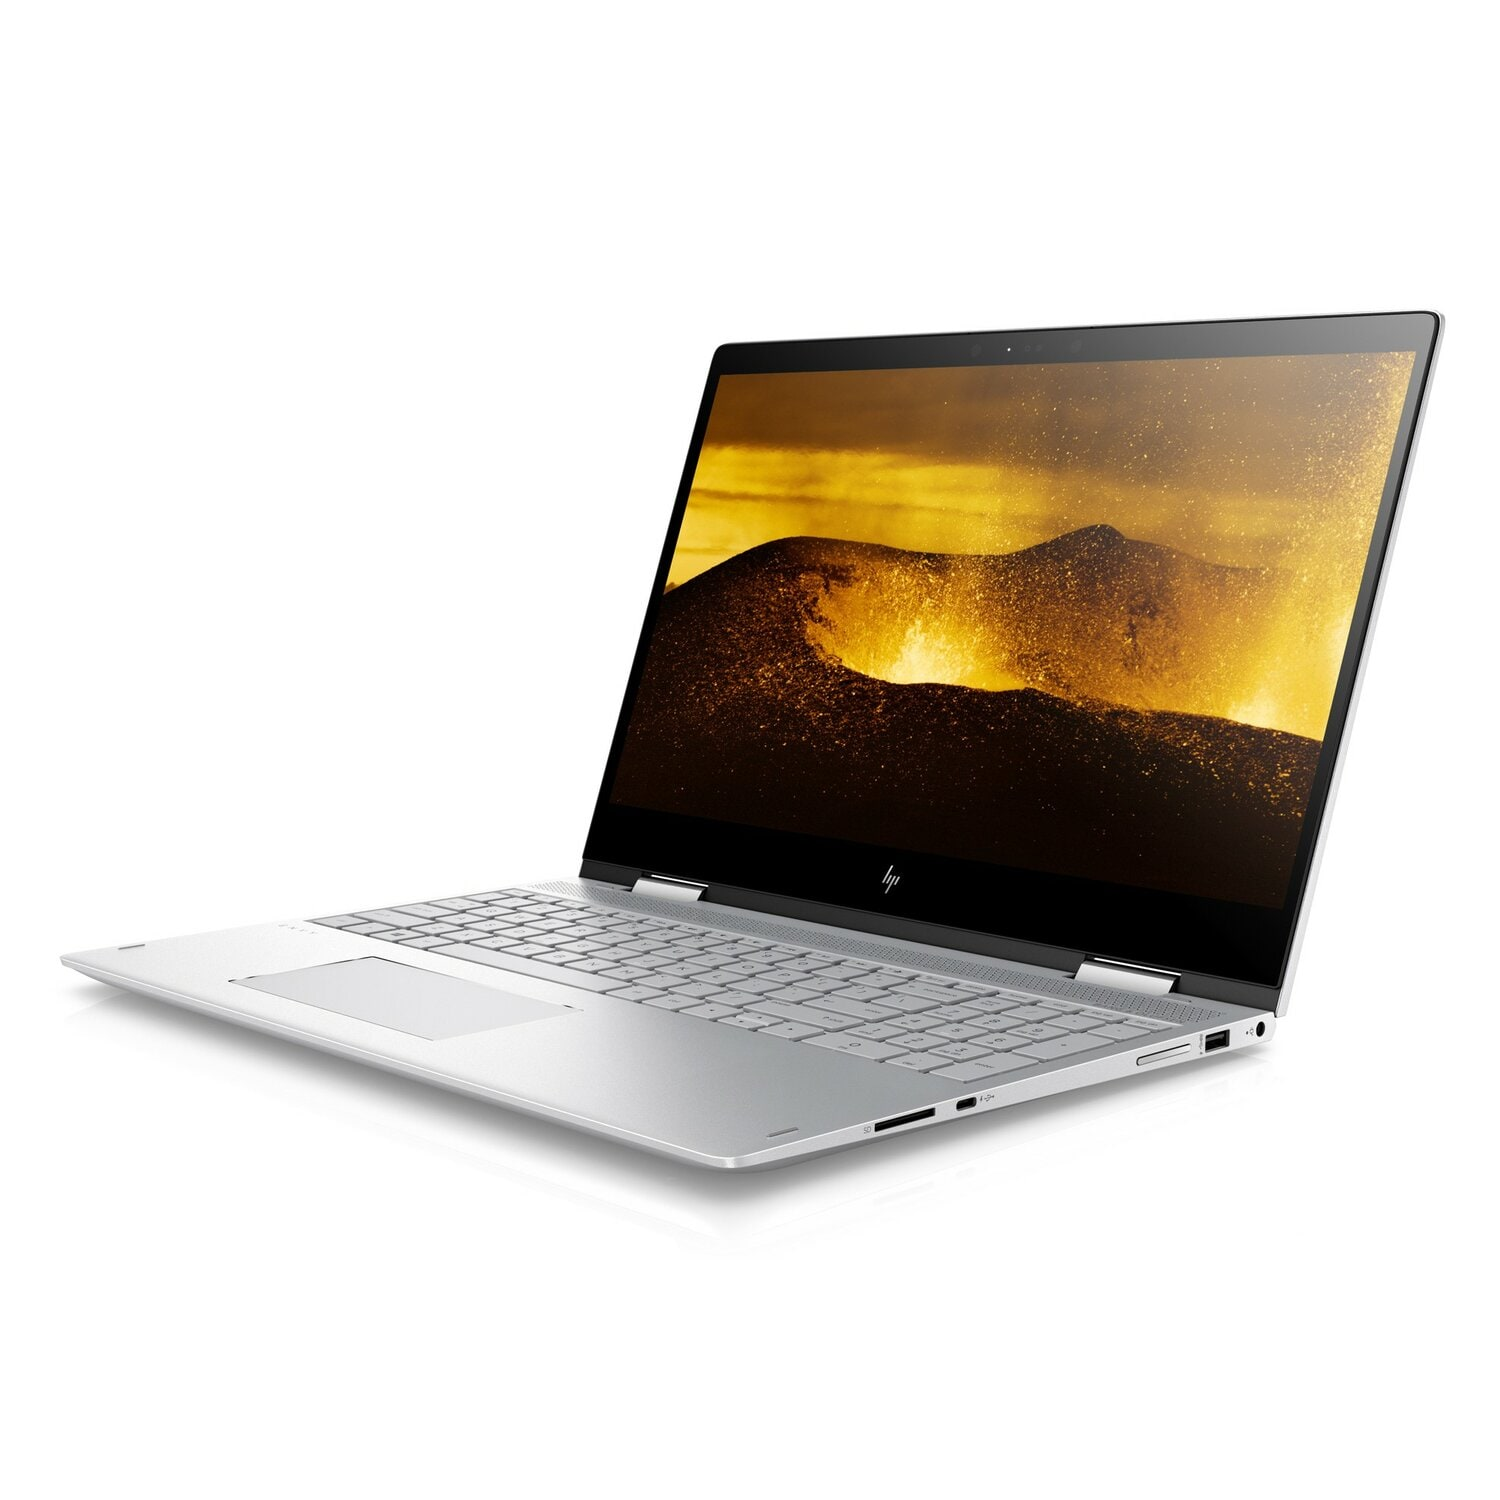 Laptop HP Envy x360 15 bp100nw 2PH04EA i7 8550U 16GB SSD512GB